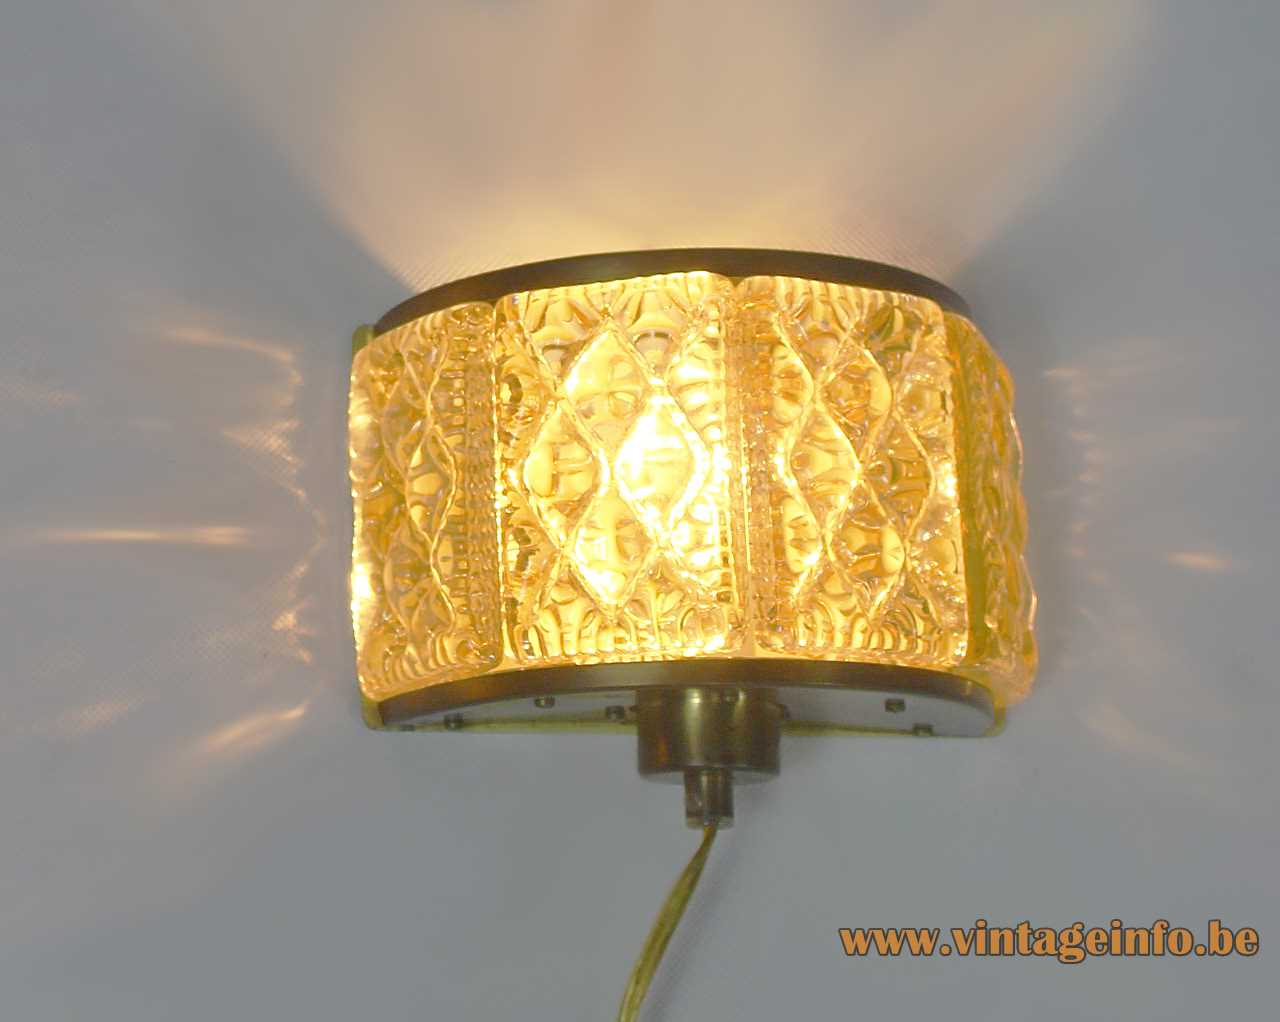 Vitrika amber glass wall lamp embossed half round curved glass brass parts E27 socket 1970s Denmark